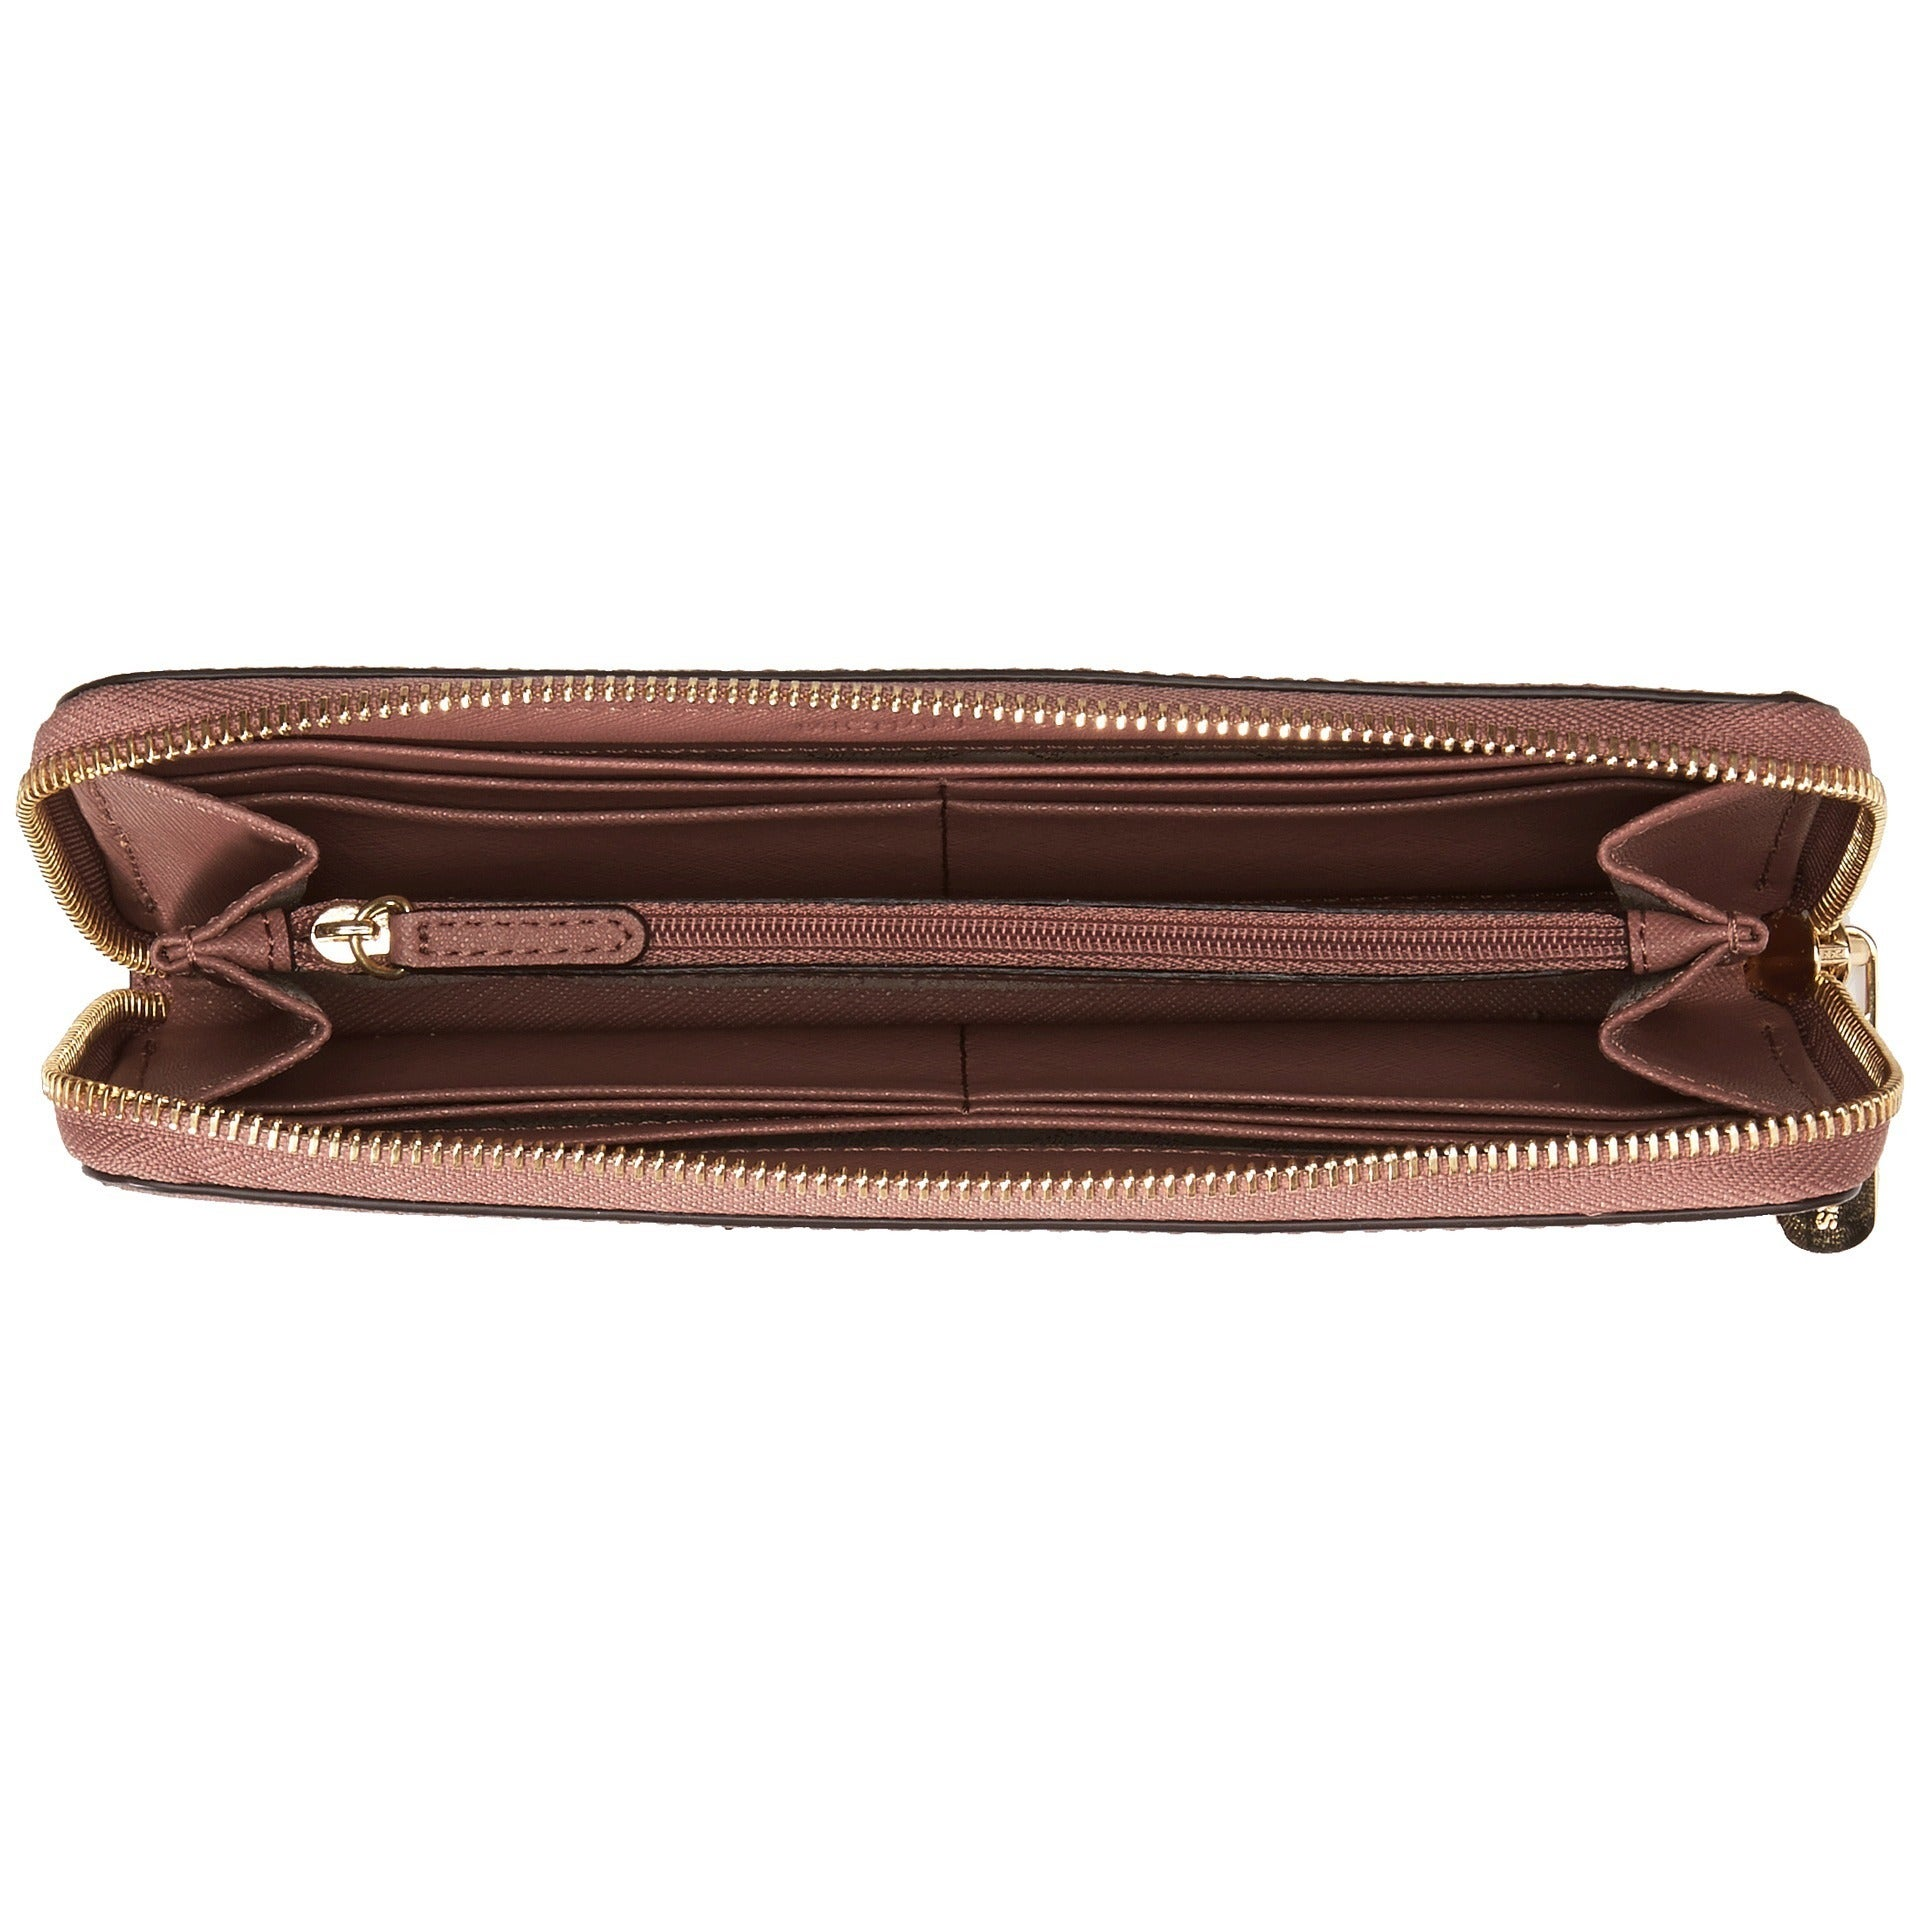 dbe957650dab Shop Michael Kors Jet Set Leather Dusty Rose Continental Travel Wallet -  Free Shipping Today - Overstock - 10473389